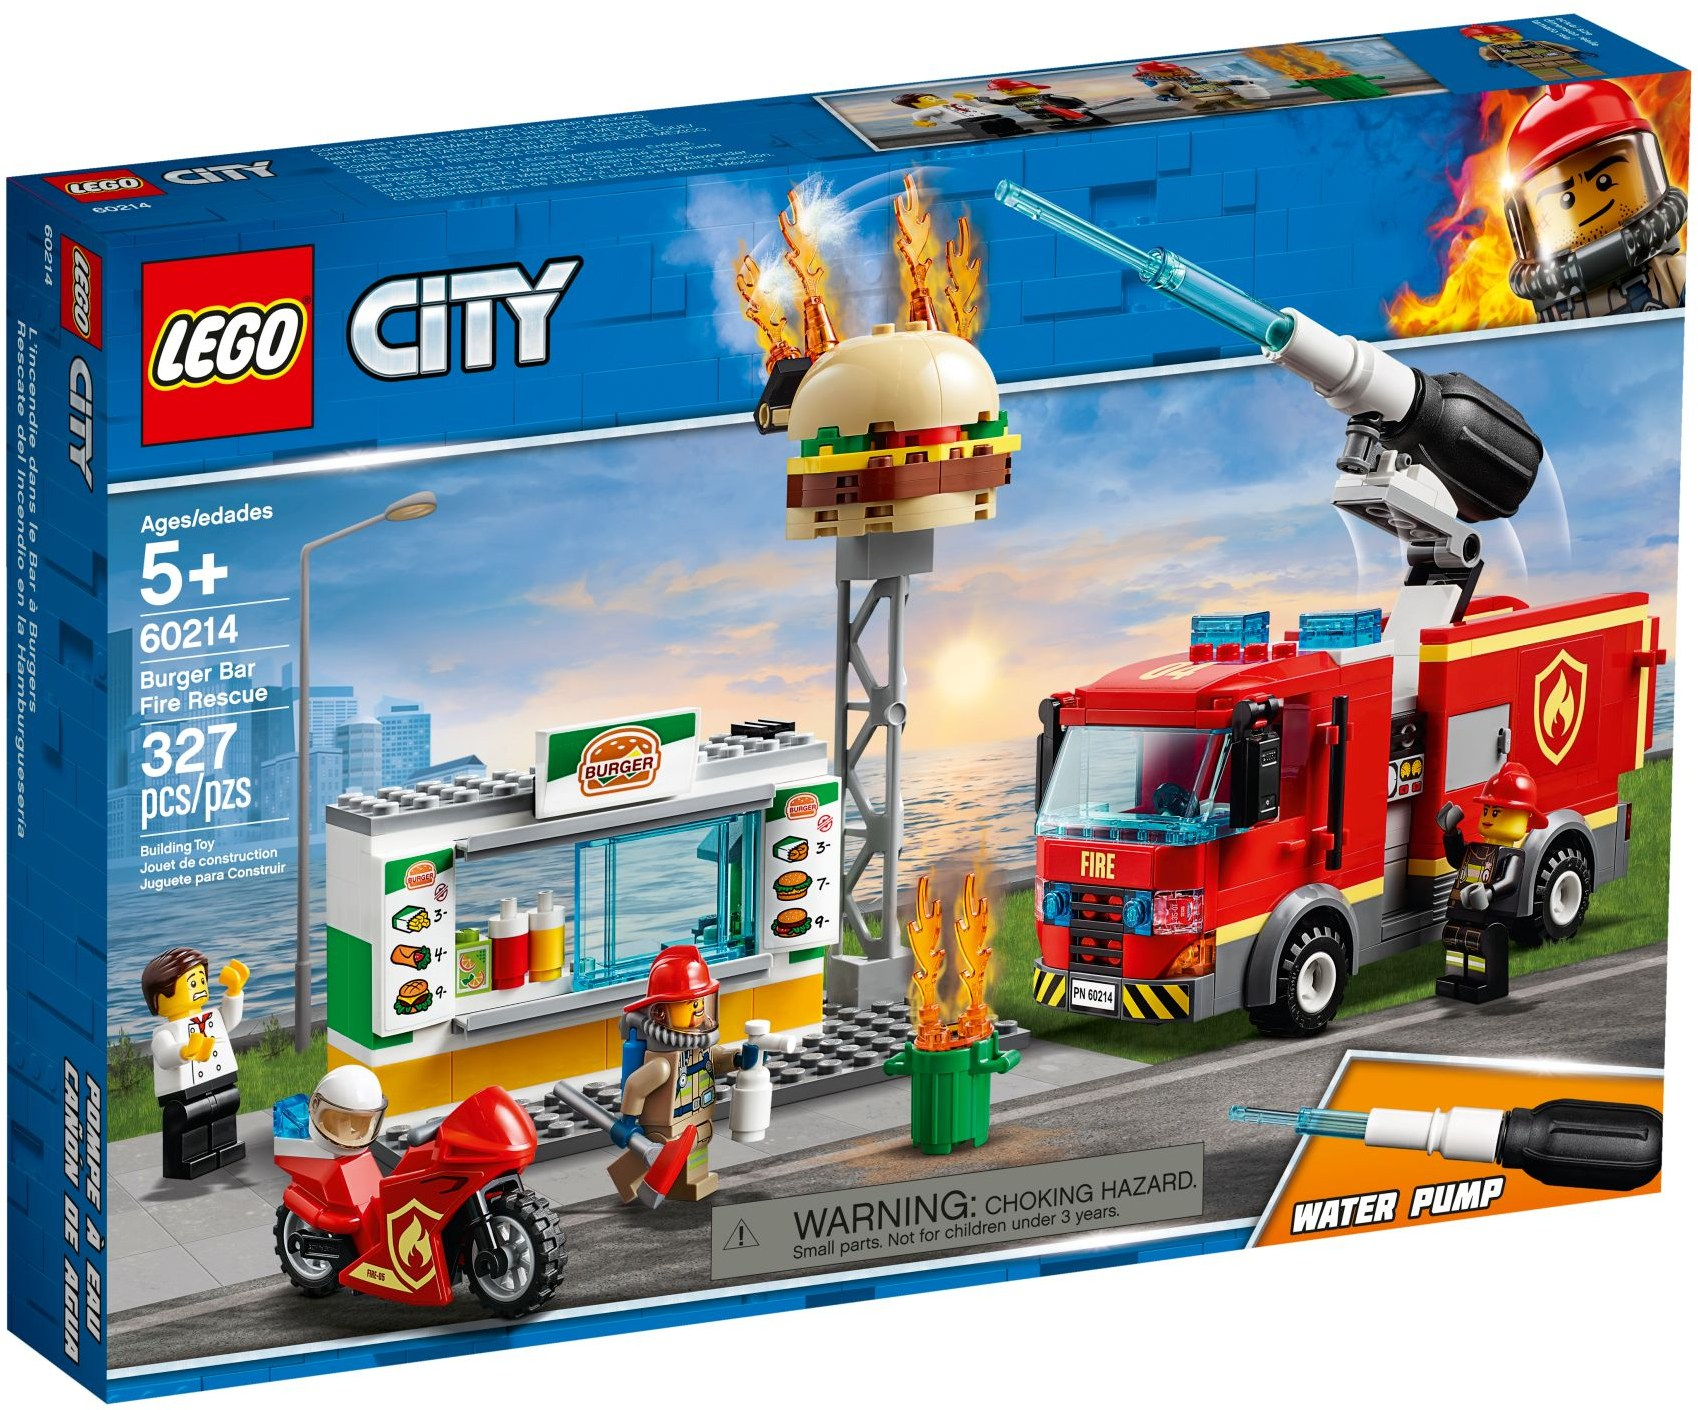 LEGO Town Sets: 60214 City Burger Bar Fire Rescue NEW